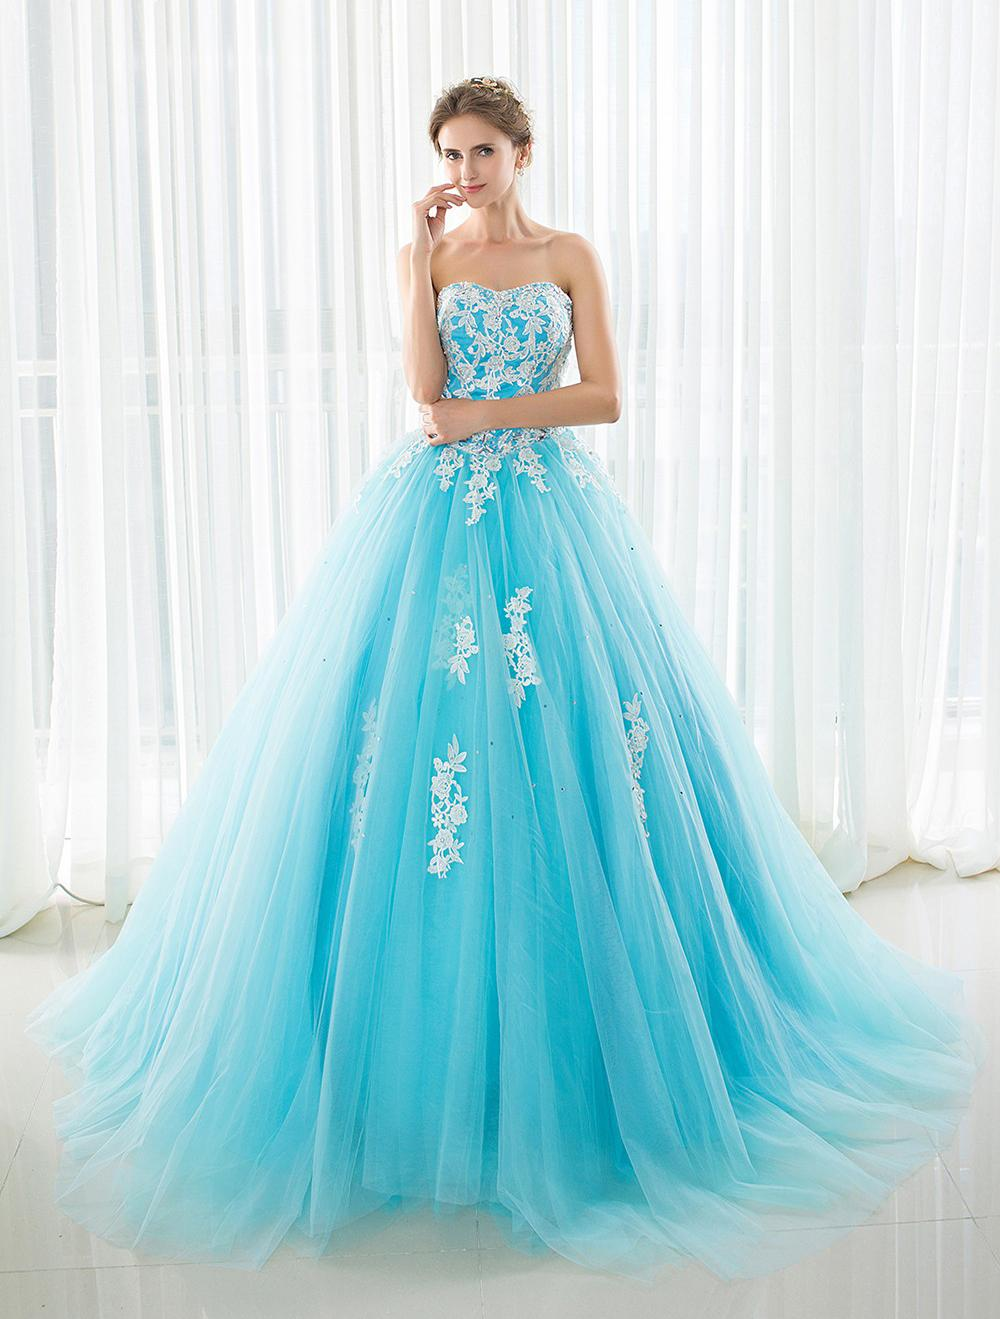 65a2cc5f930 2019 Ball Gown Prom Dresses Long Tulle Puffy Quinceanera Dresses Vestidos  15 Anos White Lace Appliques Sweet 16 Dresses Debutante Gown Wholesale  Quinceanera ...